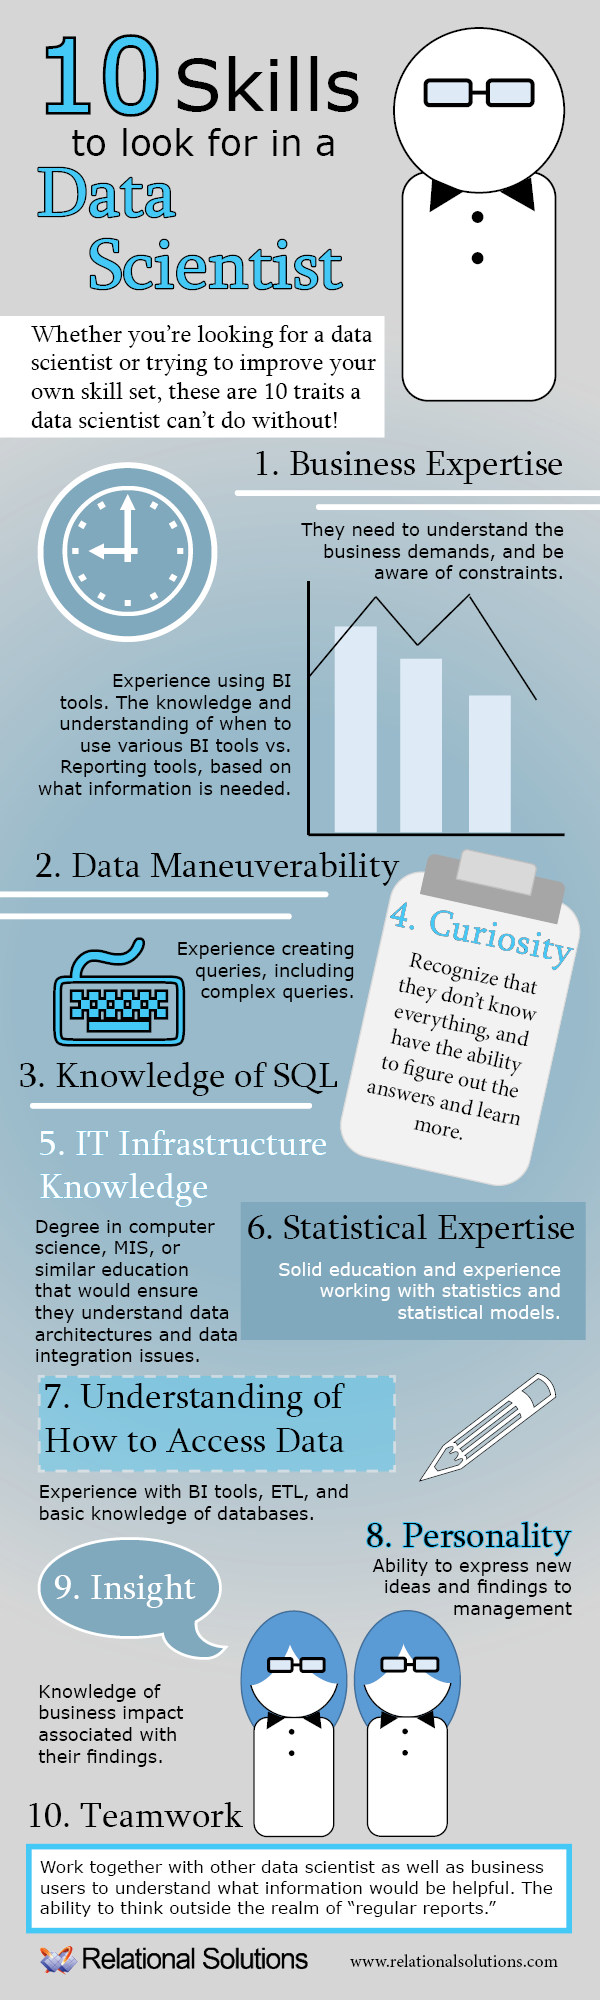 Data Science skills should include the following. If you're hiring a data scientist or enhancing your existing business intelligence expertise, here are skills that take you from a business analyst to a data scientist.